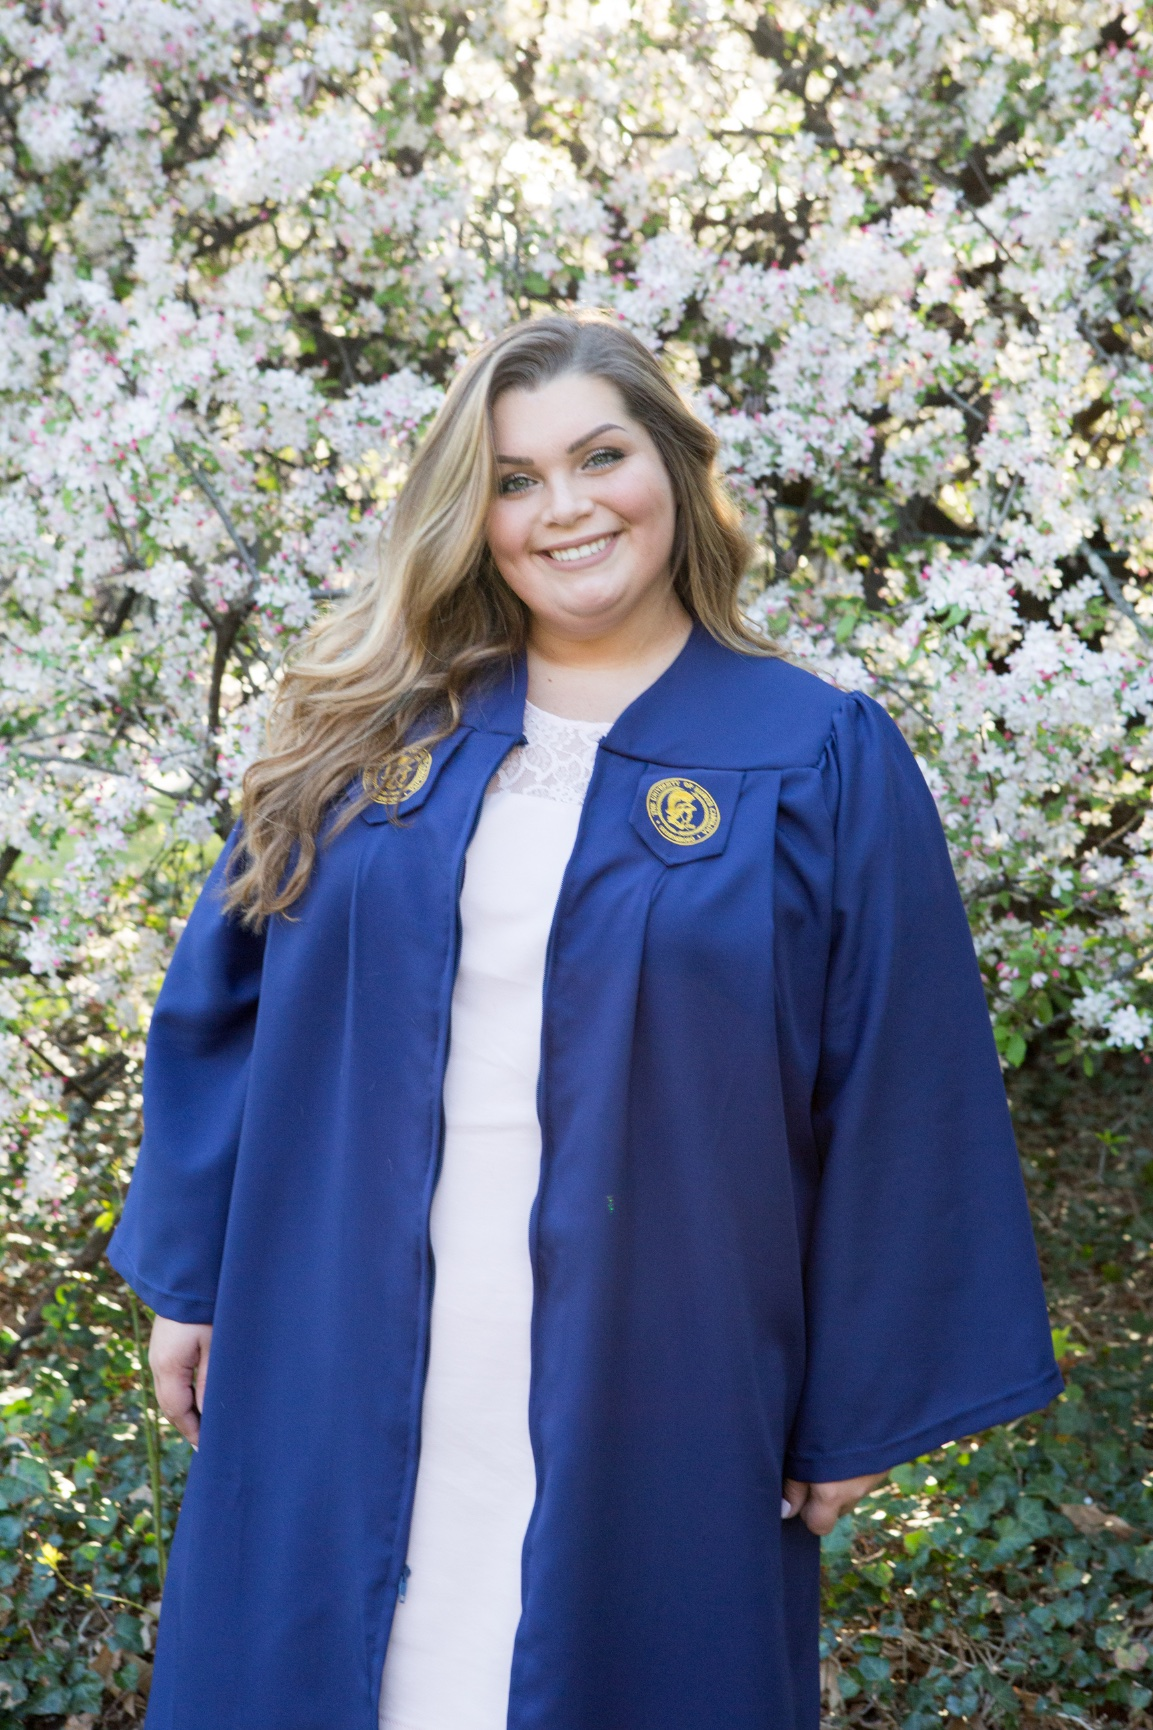 Awesome Uncg Cap And Gown Component - Ball Gown Wedding Dresses ...